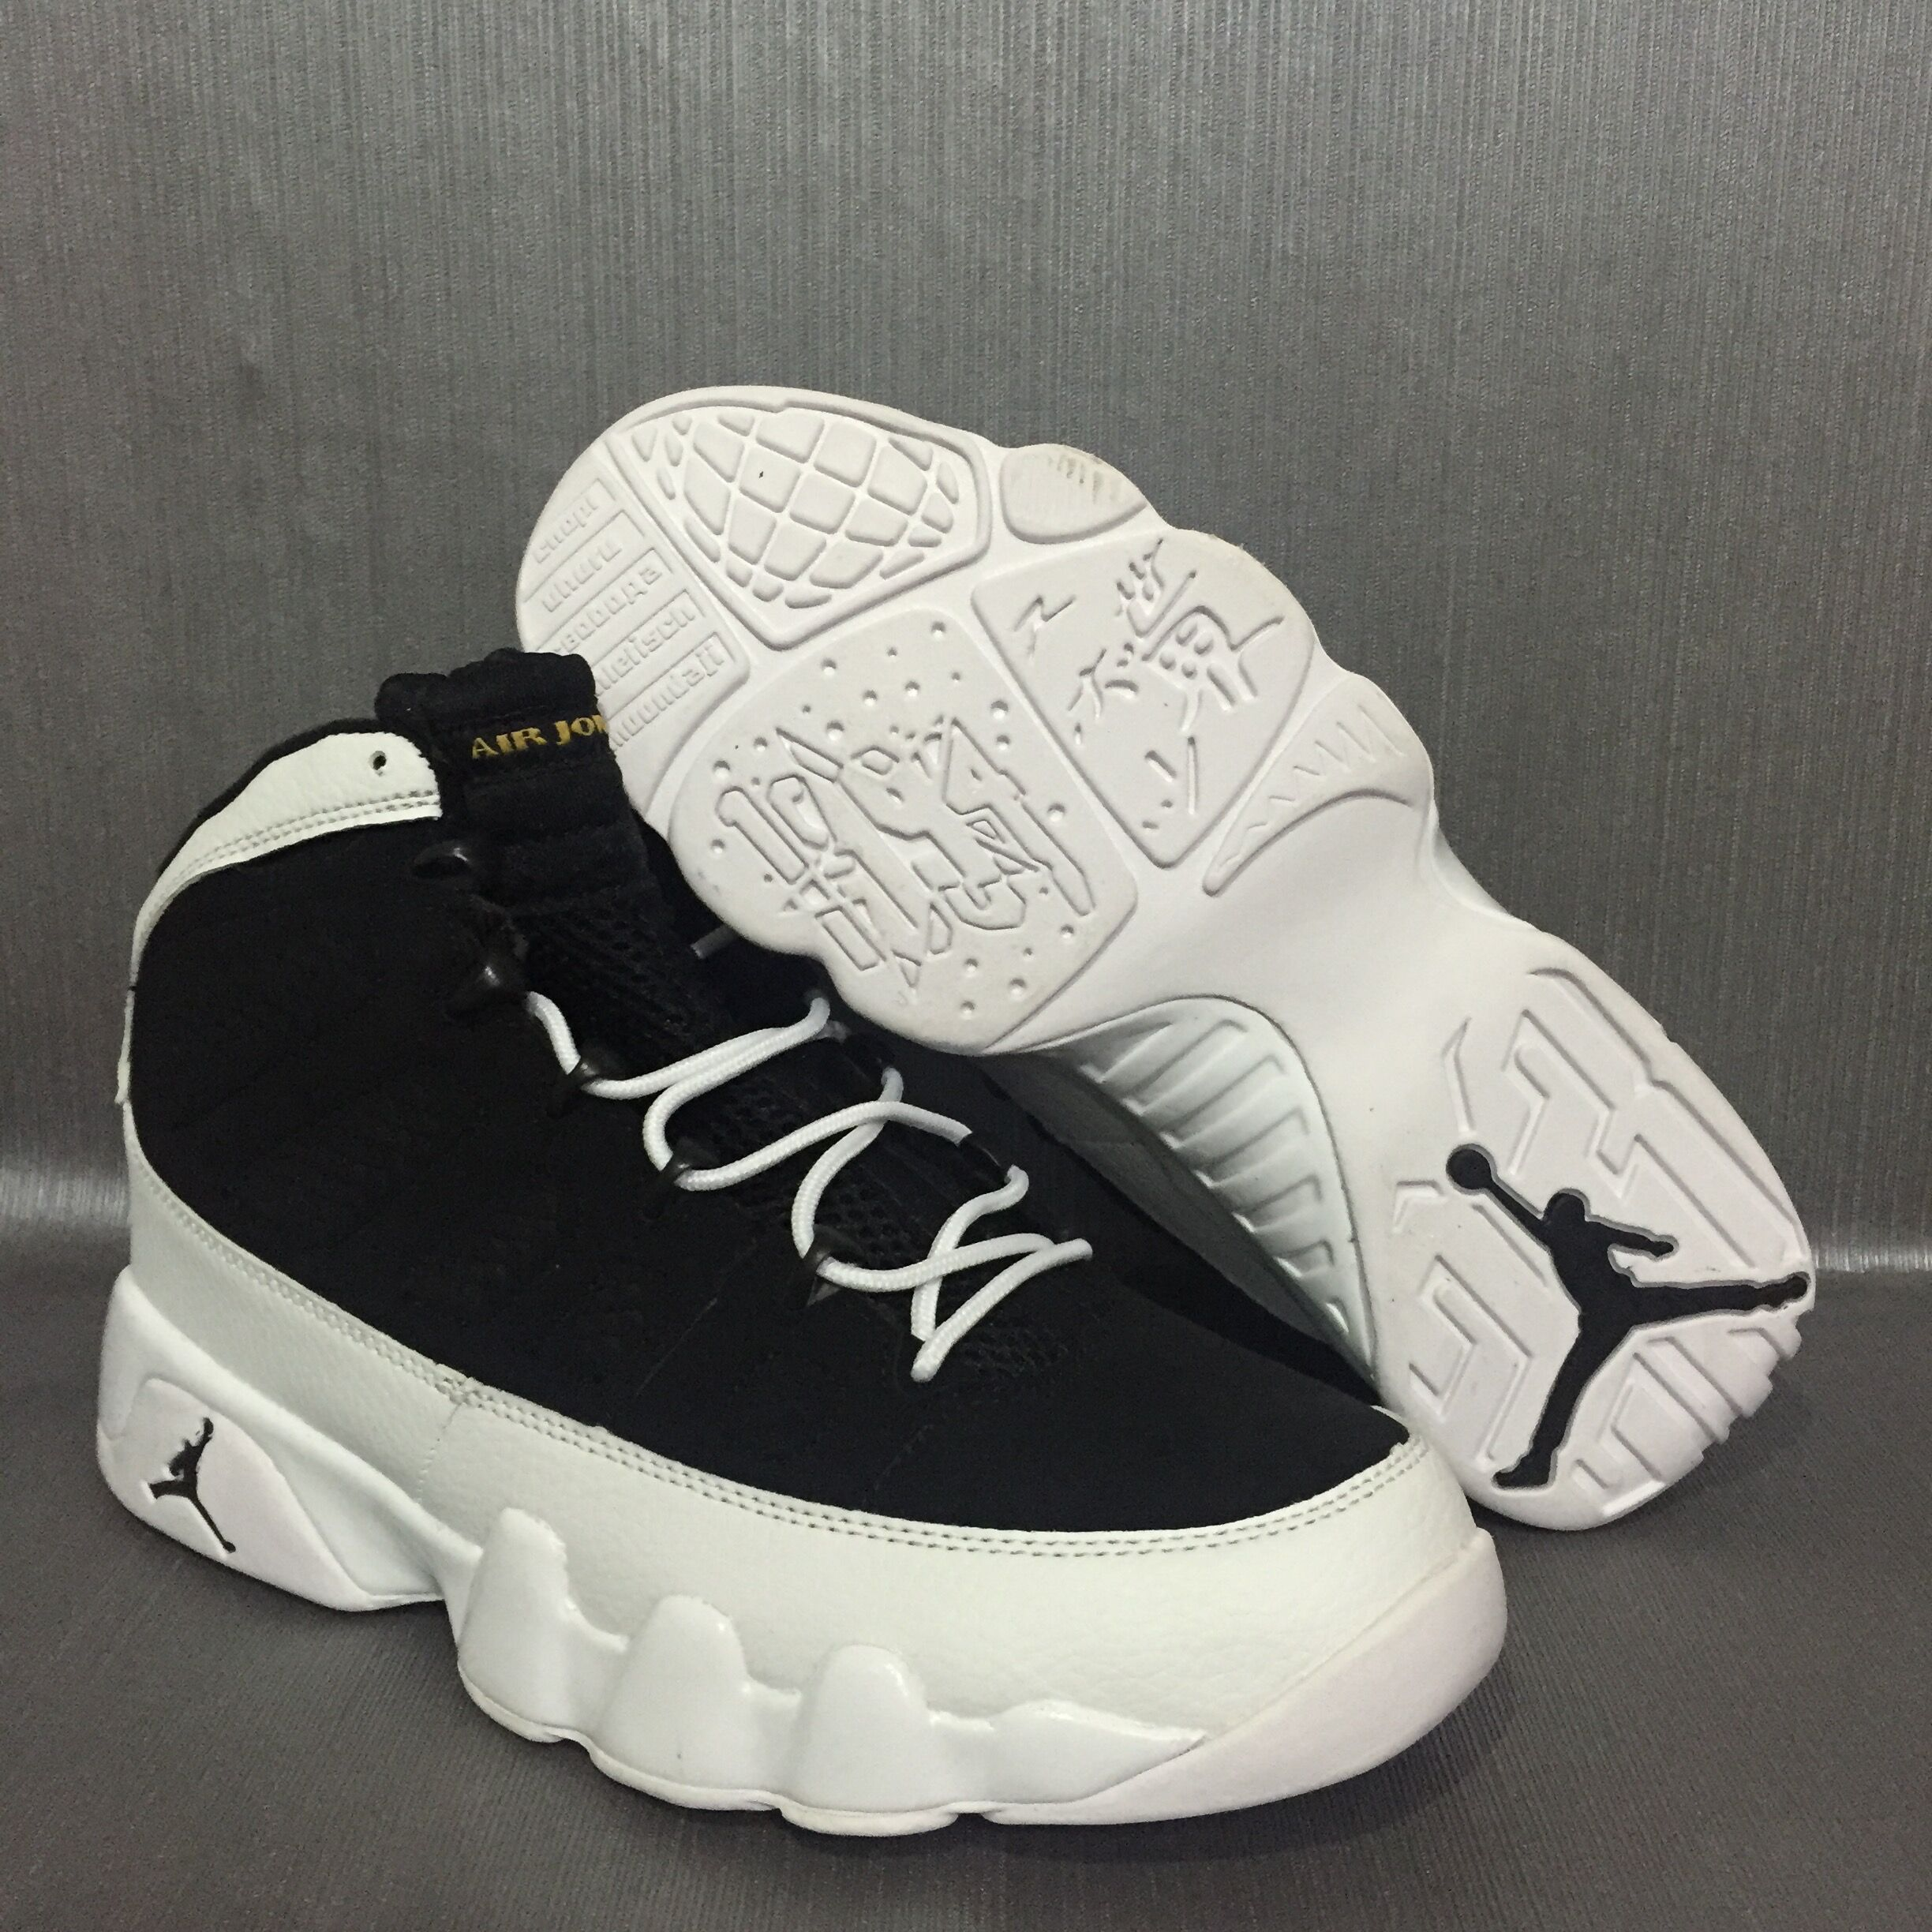 New Air Jordan 9 Oreo Shoes